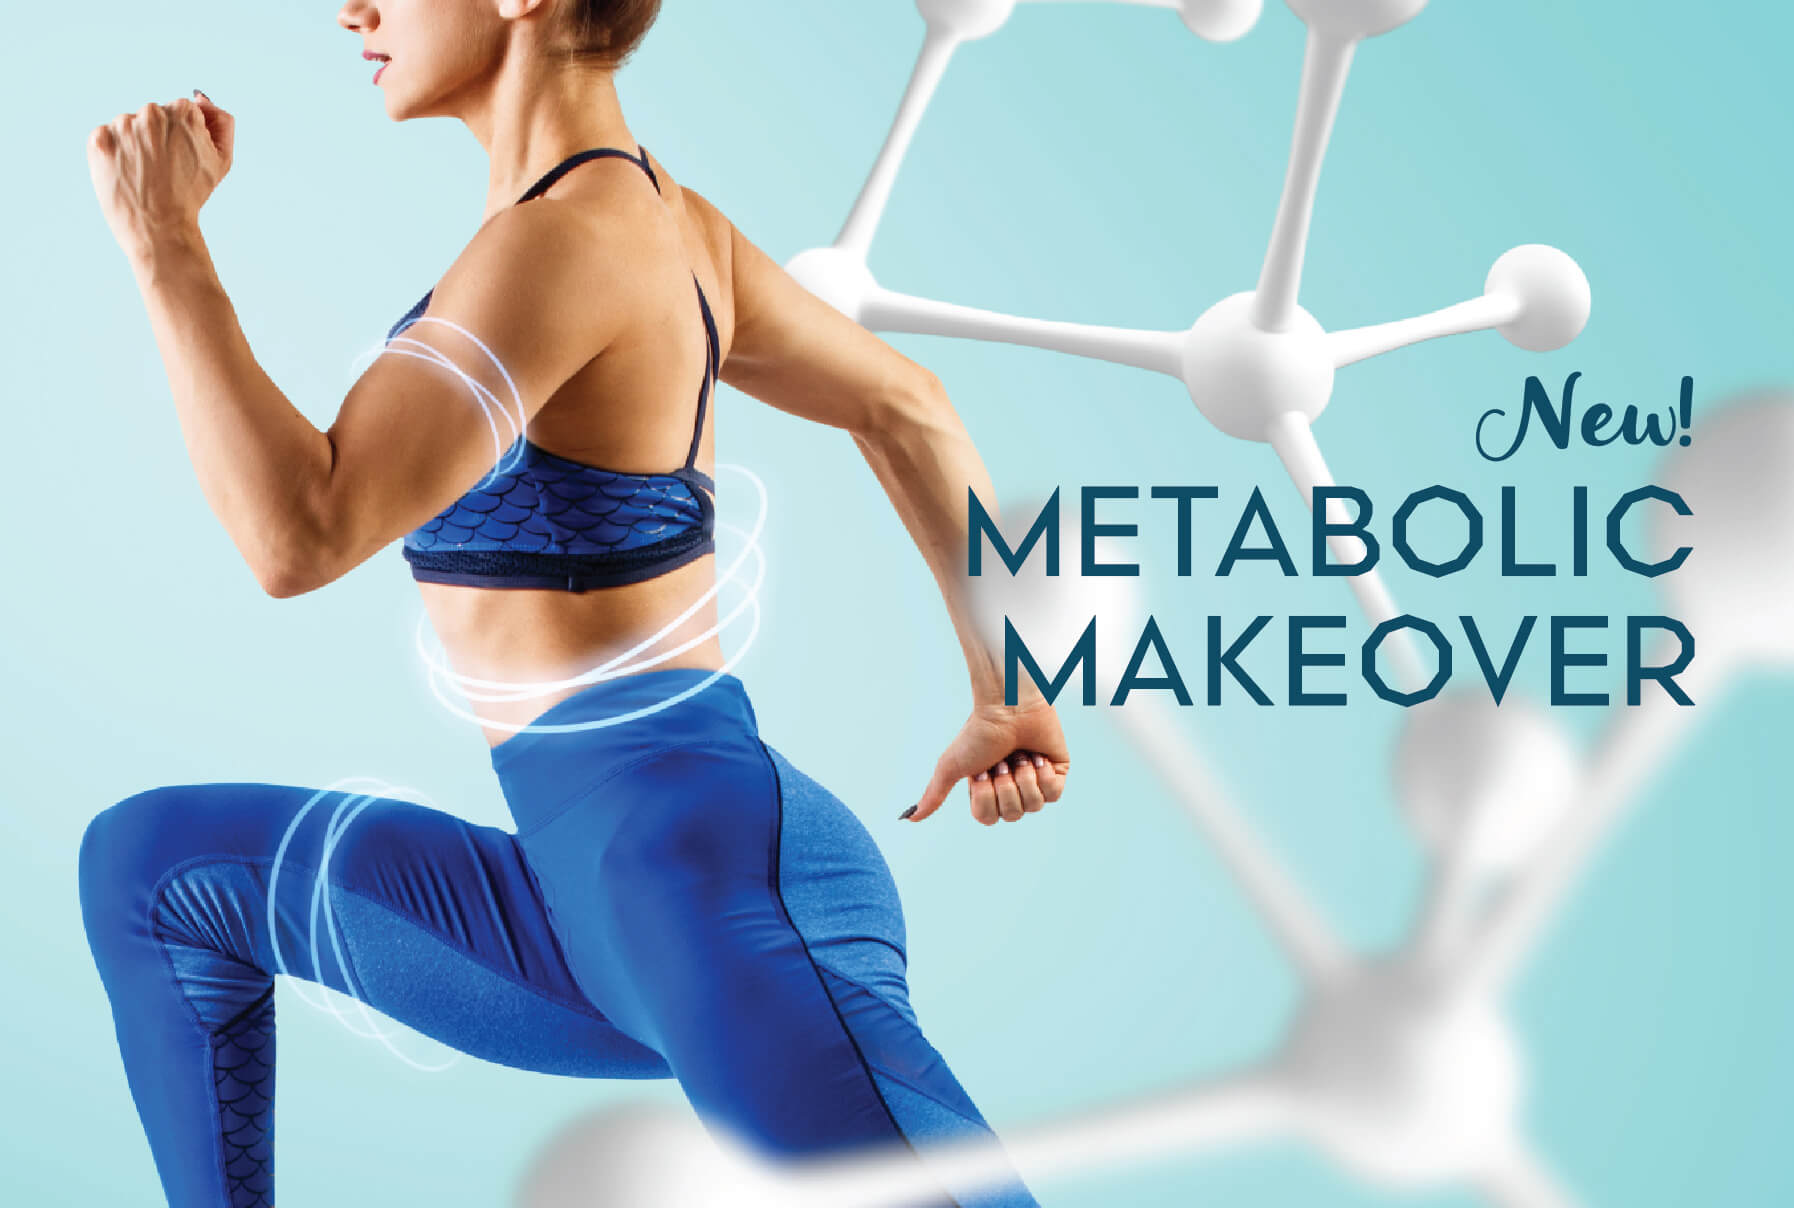 A Metabolic Makeover to Prioritize Your Goals